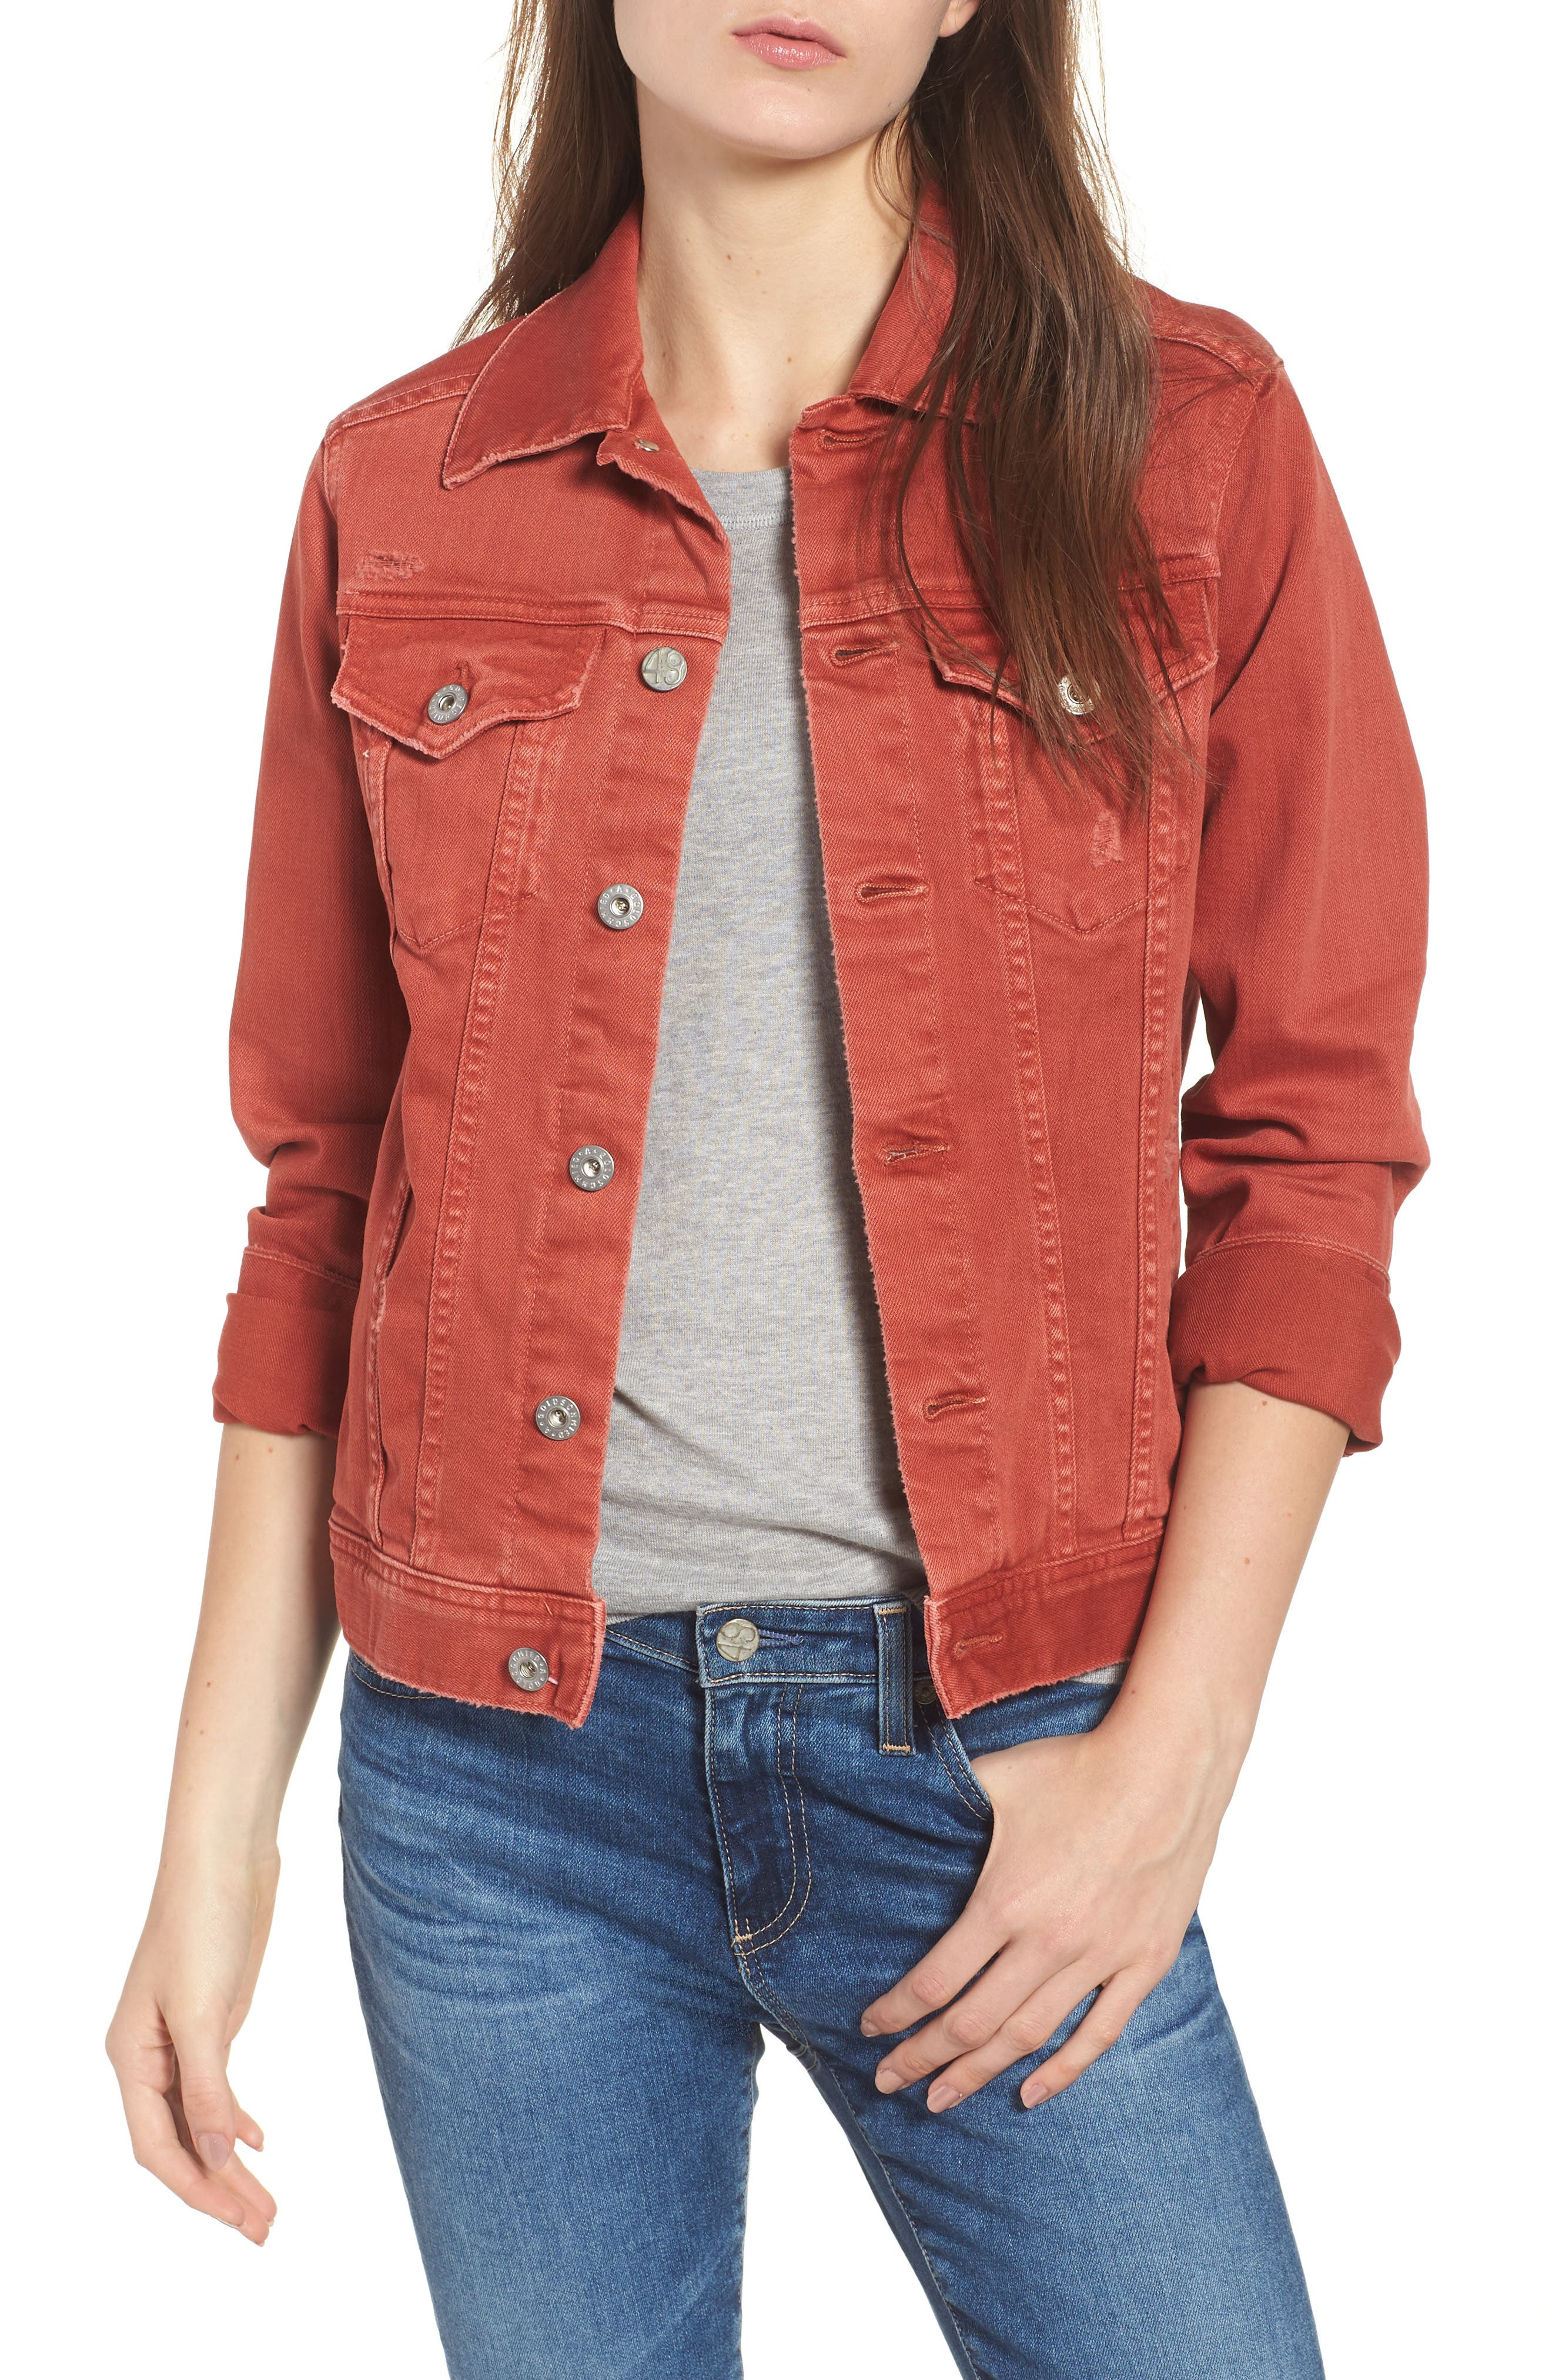 Mya Denim Jacket,                             Main thumbnail 1, color,                             10 YEARS REMEDY FIREBRICK